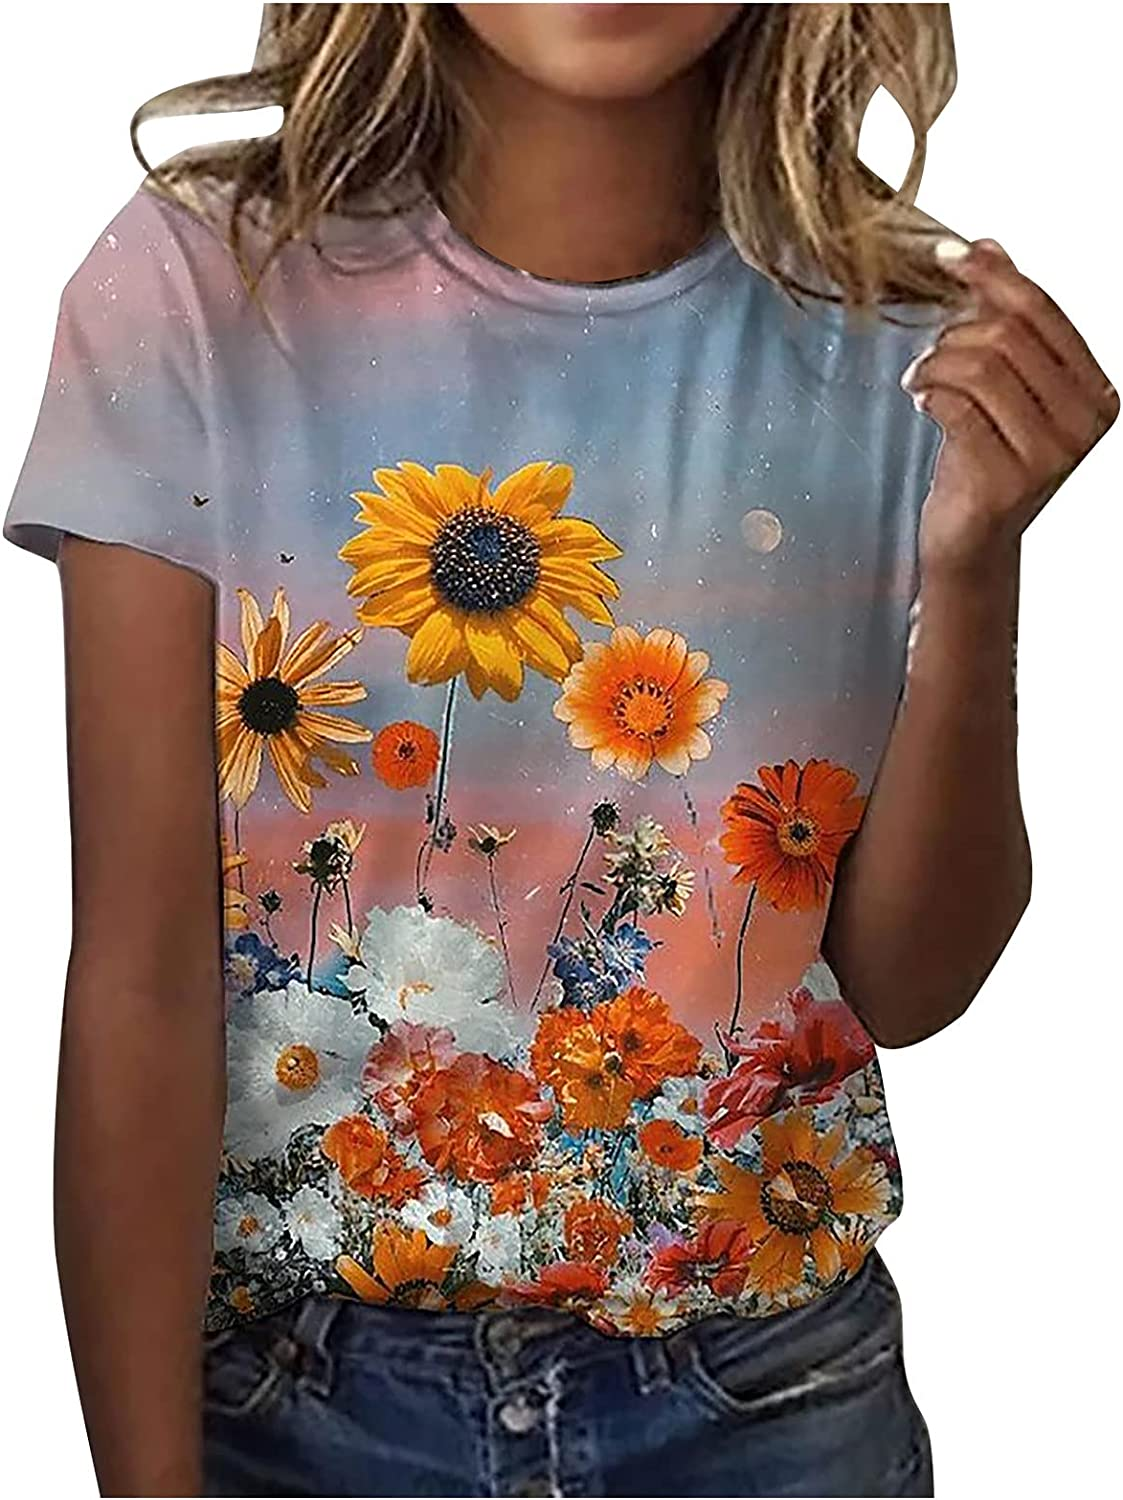 Women's Summer Blouses Short Sleeve Comfy Boat Neck T Shirts Beauitful Floral Graphic Tops Popular Casual Loose Tees